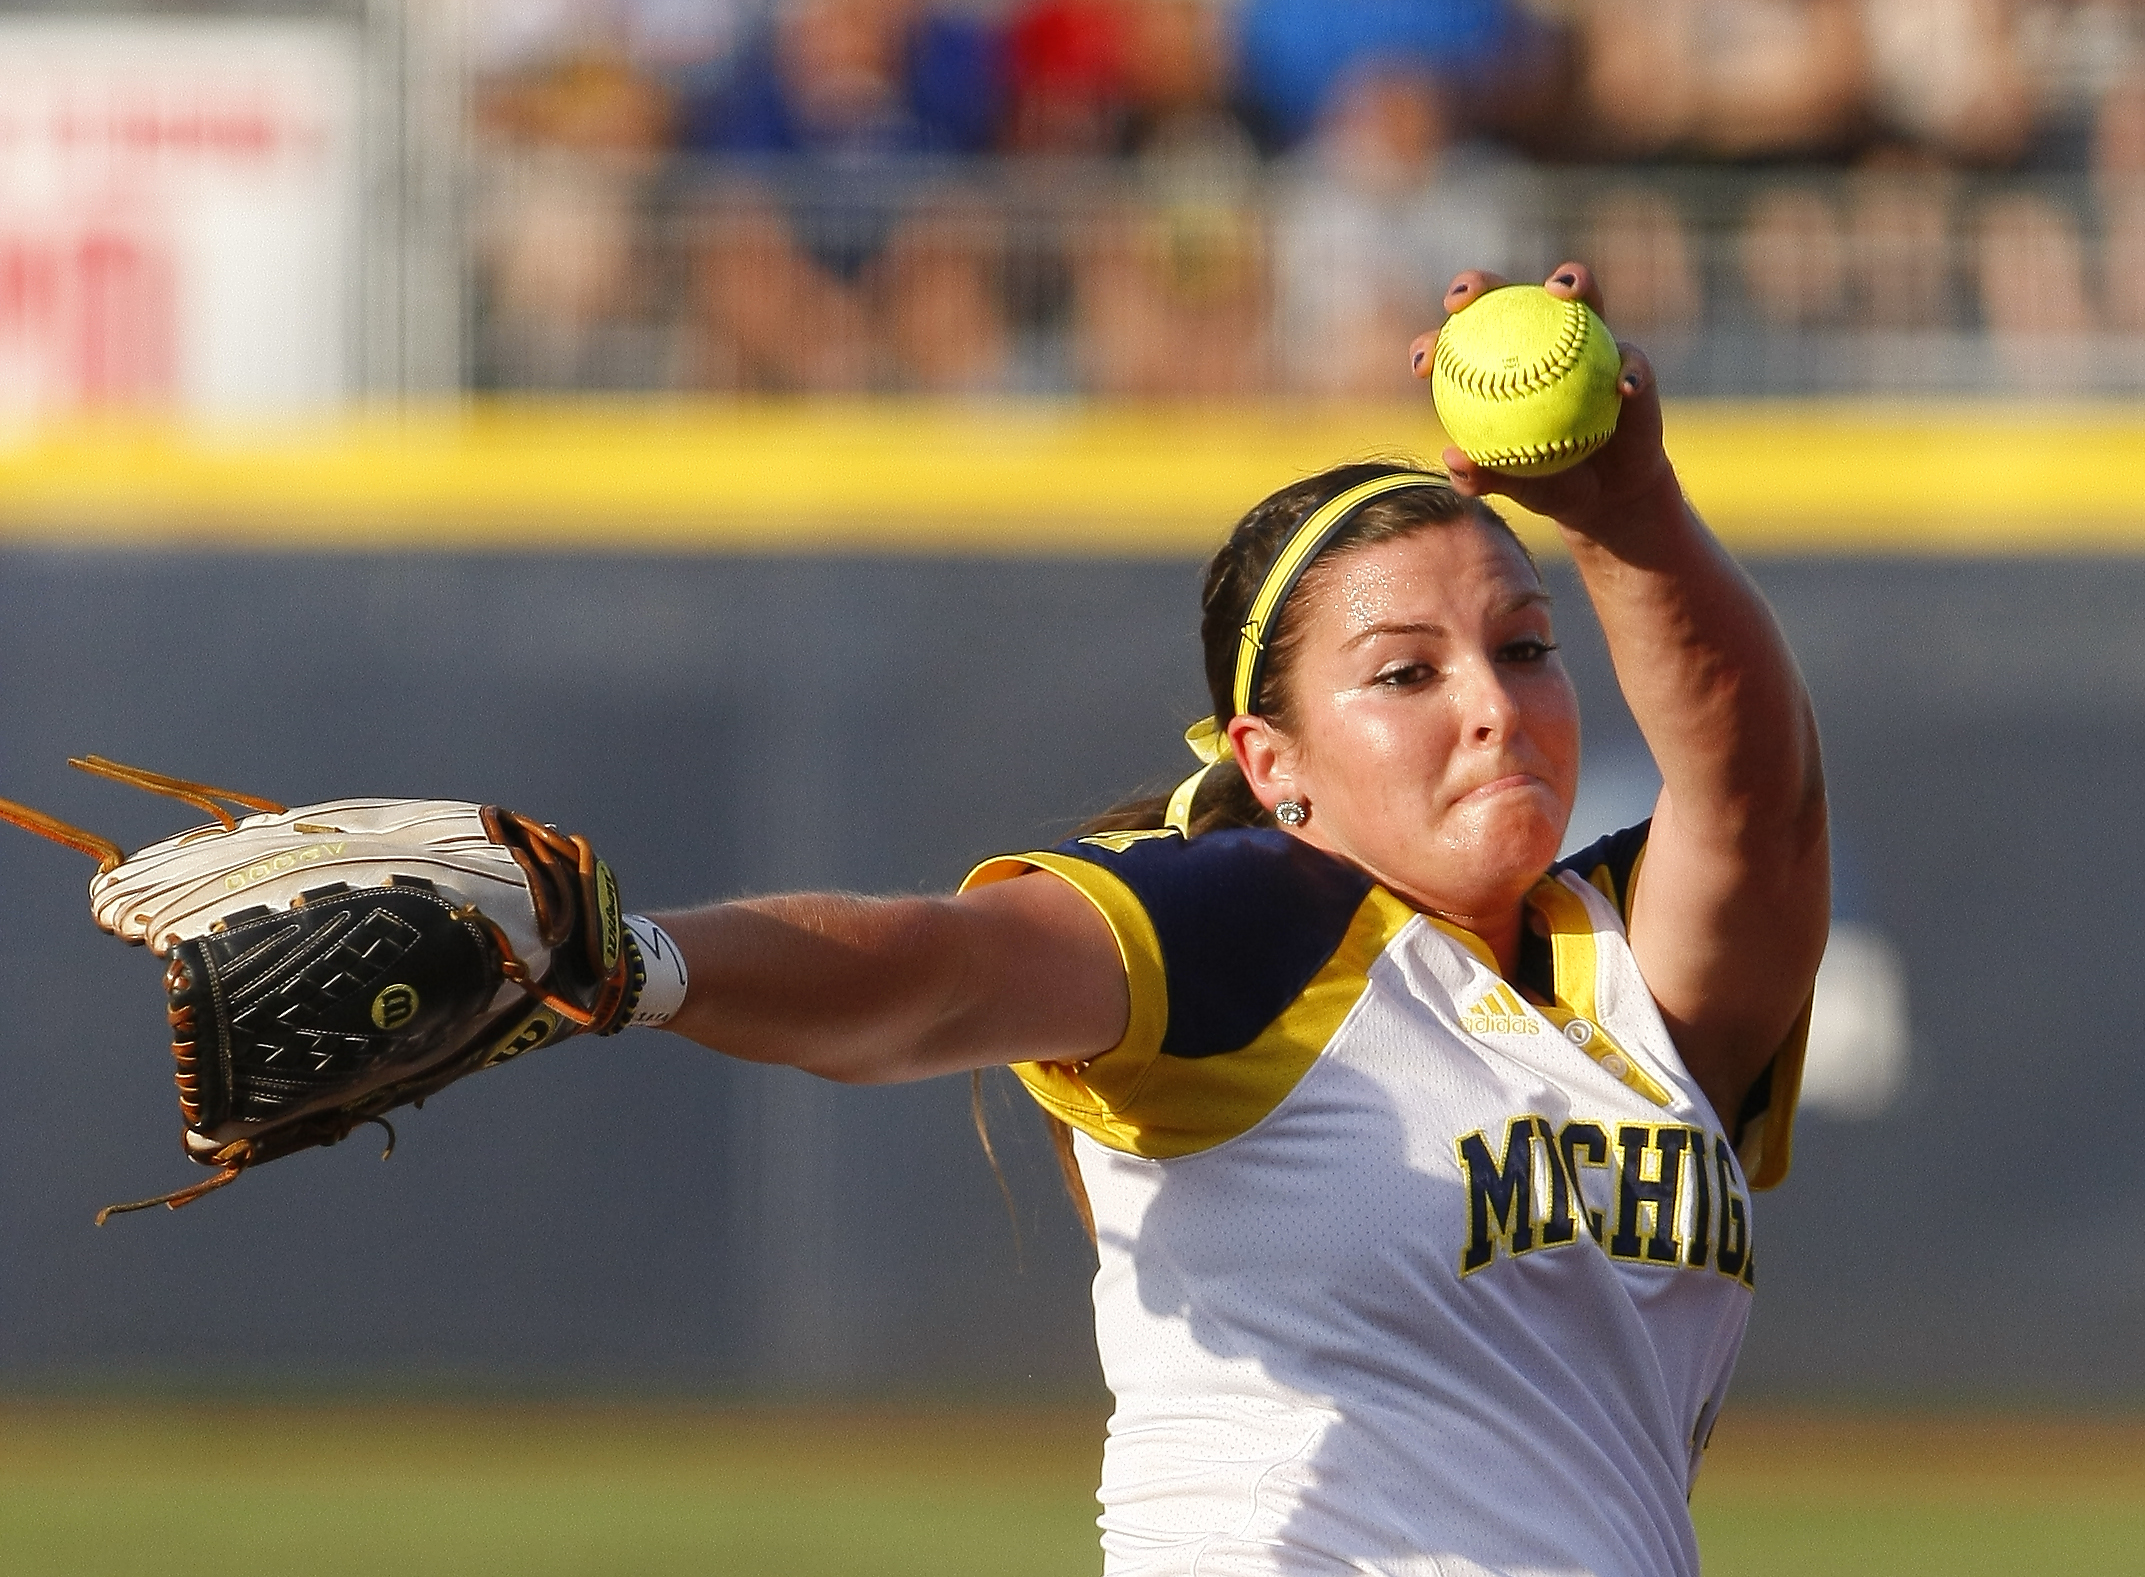 Michigan starter Haylie Wagner pitches against Florida during the first inning of Game 2 of the finals in the NCAA softball Women's College World Series, Tuesday, June 2, 2015, in Oklahoma City. (AP Photo/Alonzo Adams)